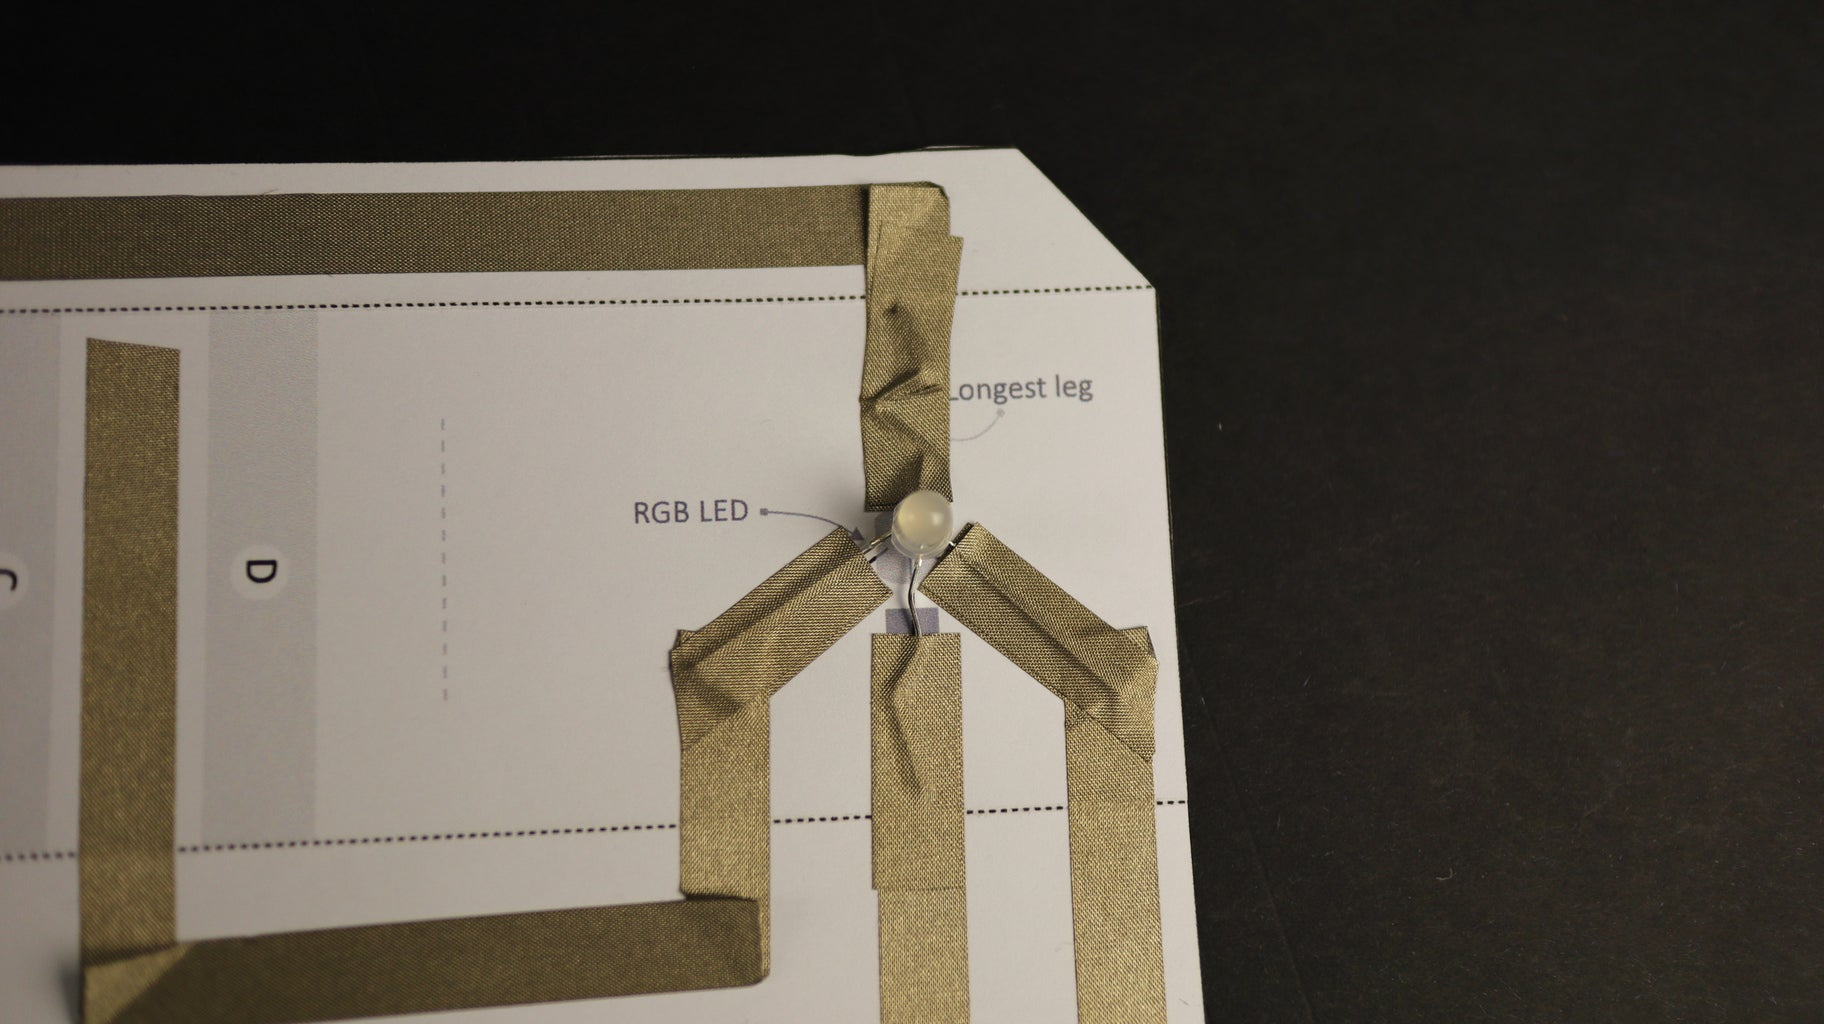 Attach the RGB LED to the Circuit Using Conductive Tape